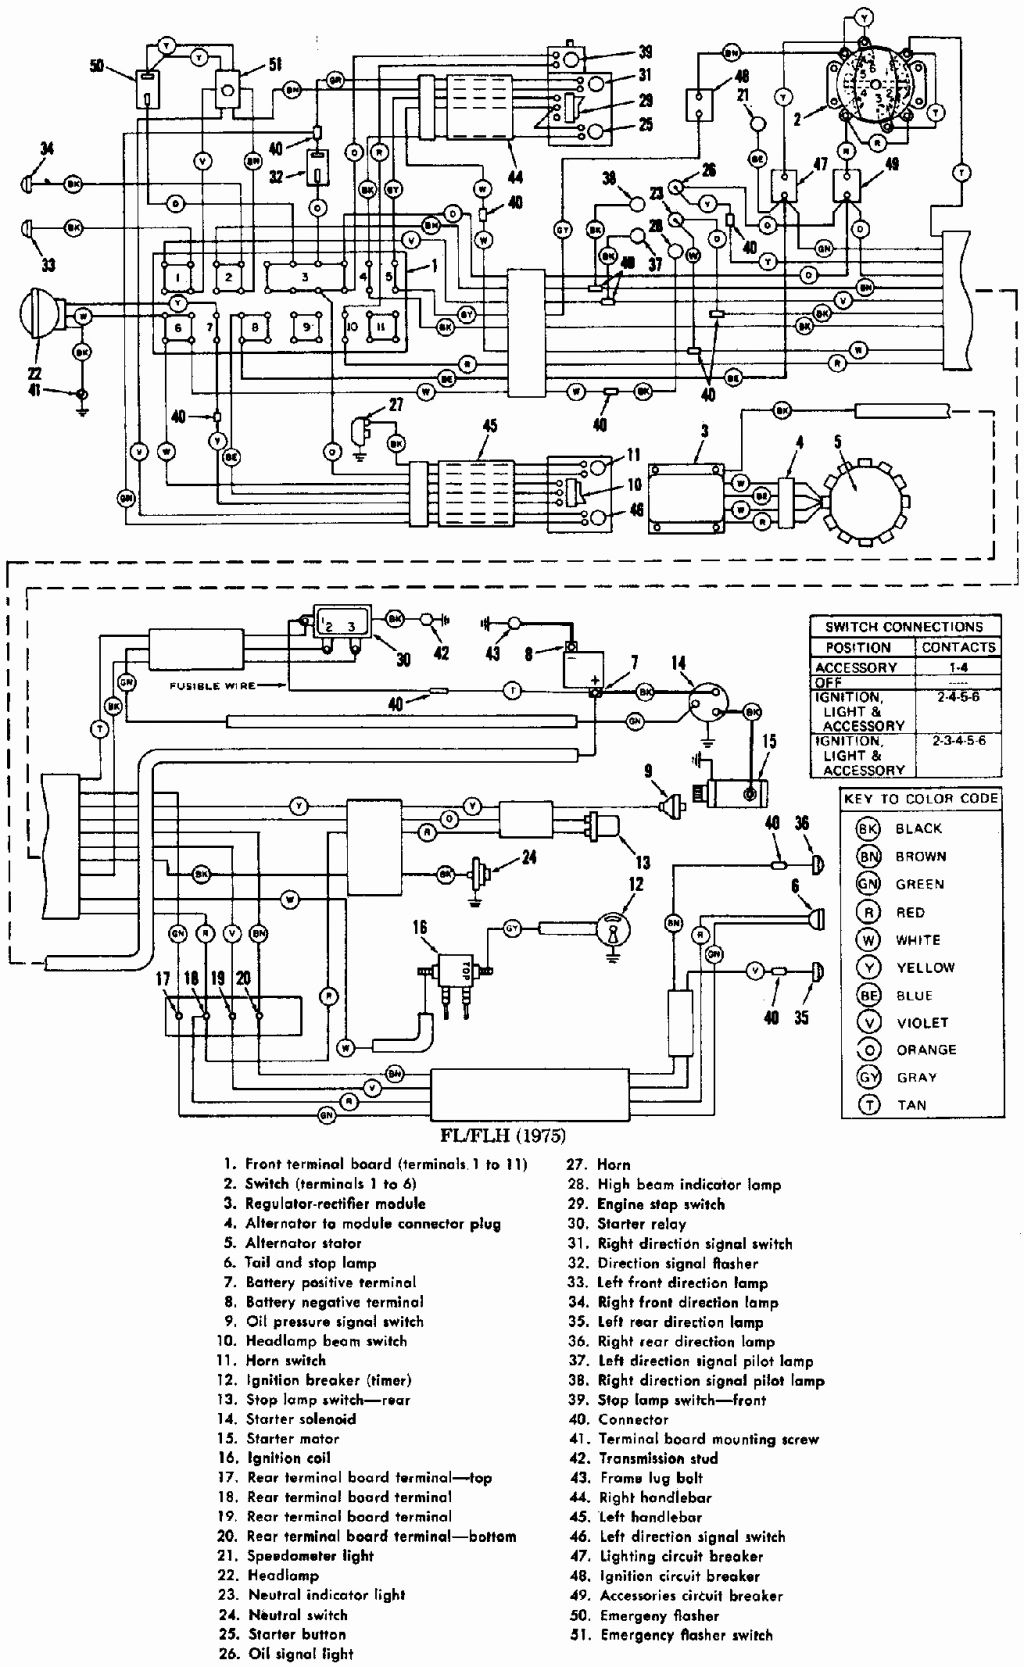 1998 Harley Wiring Harness Diagram - Wiring Diagram Img on